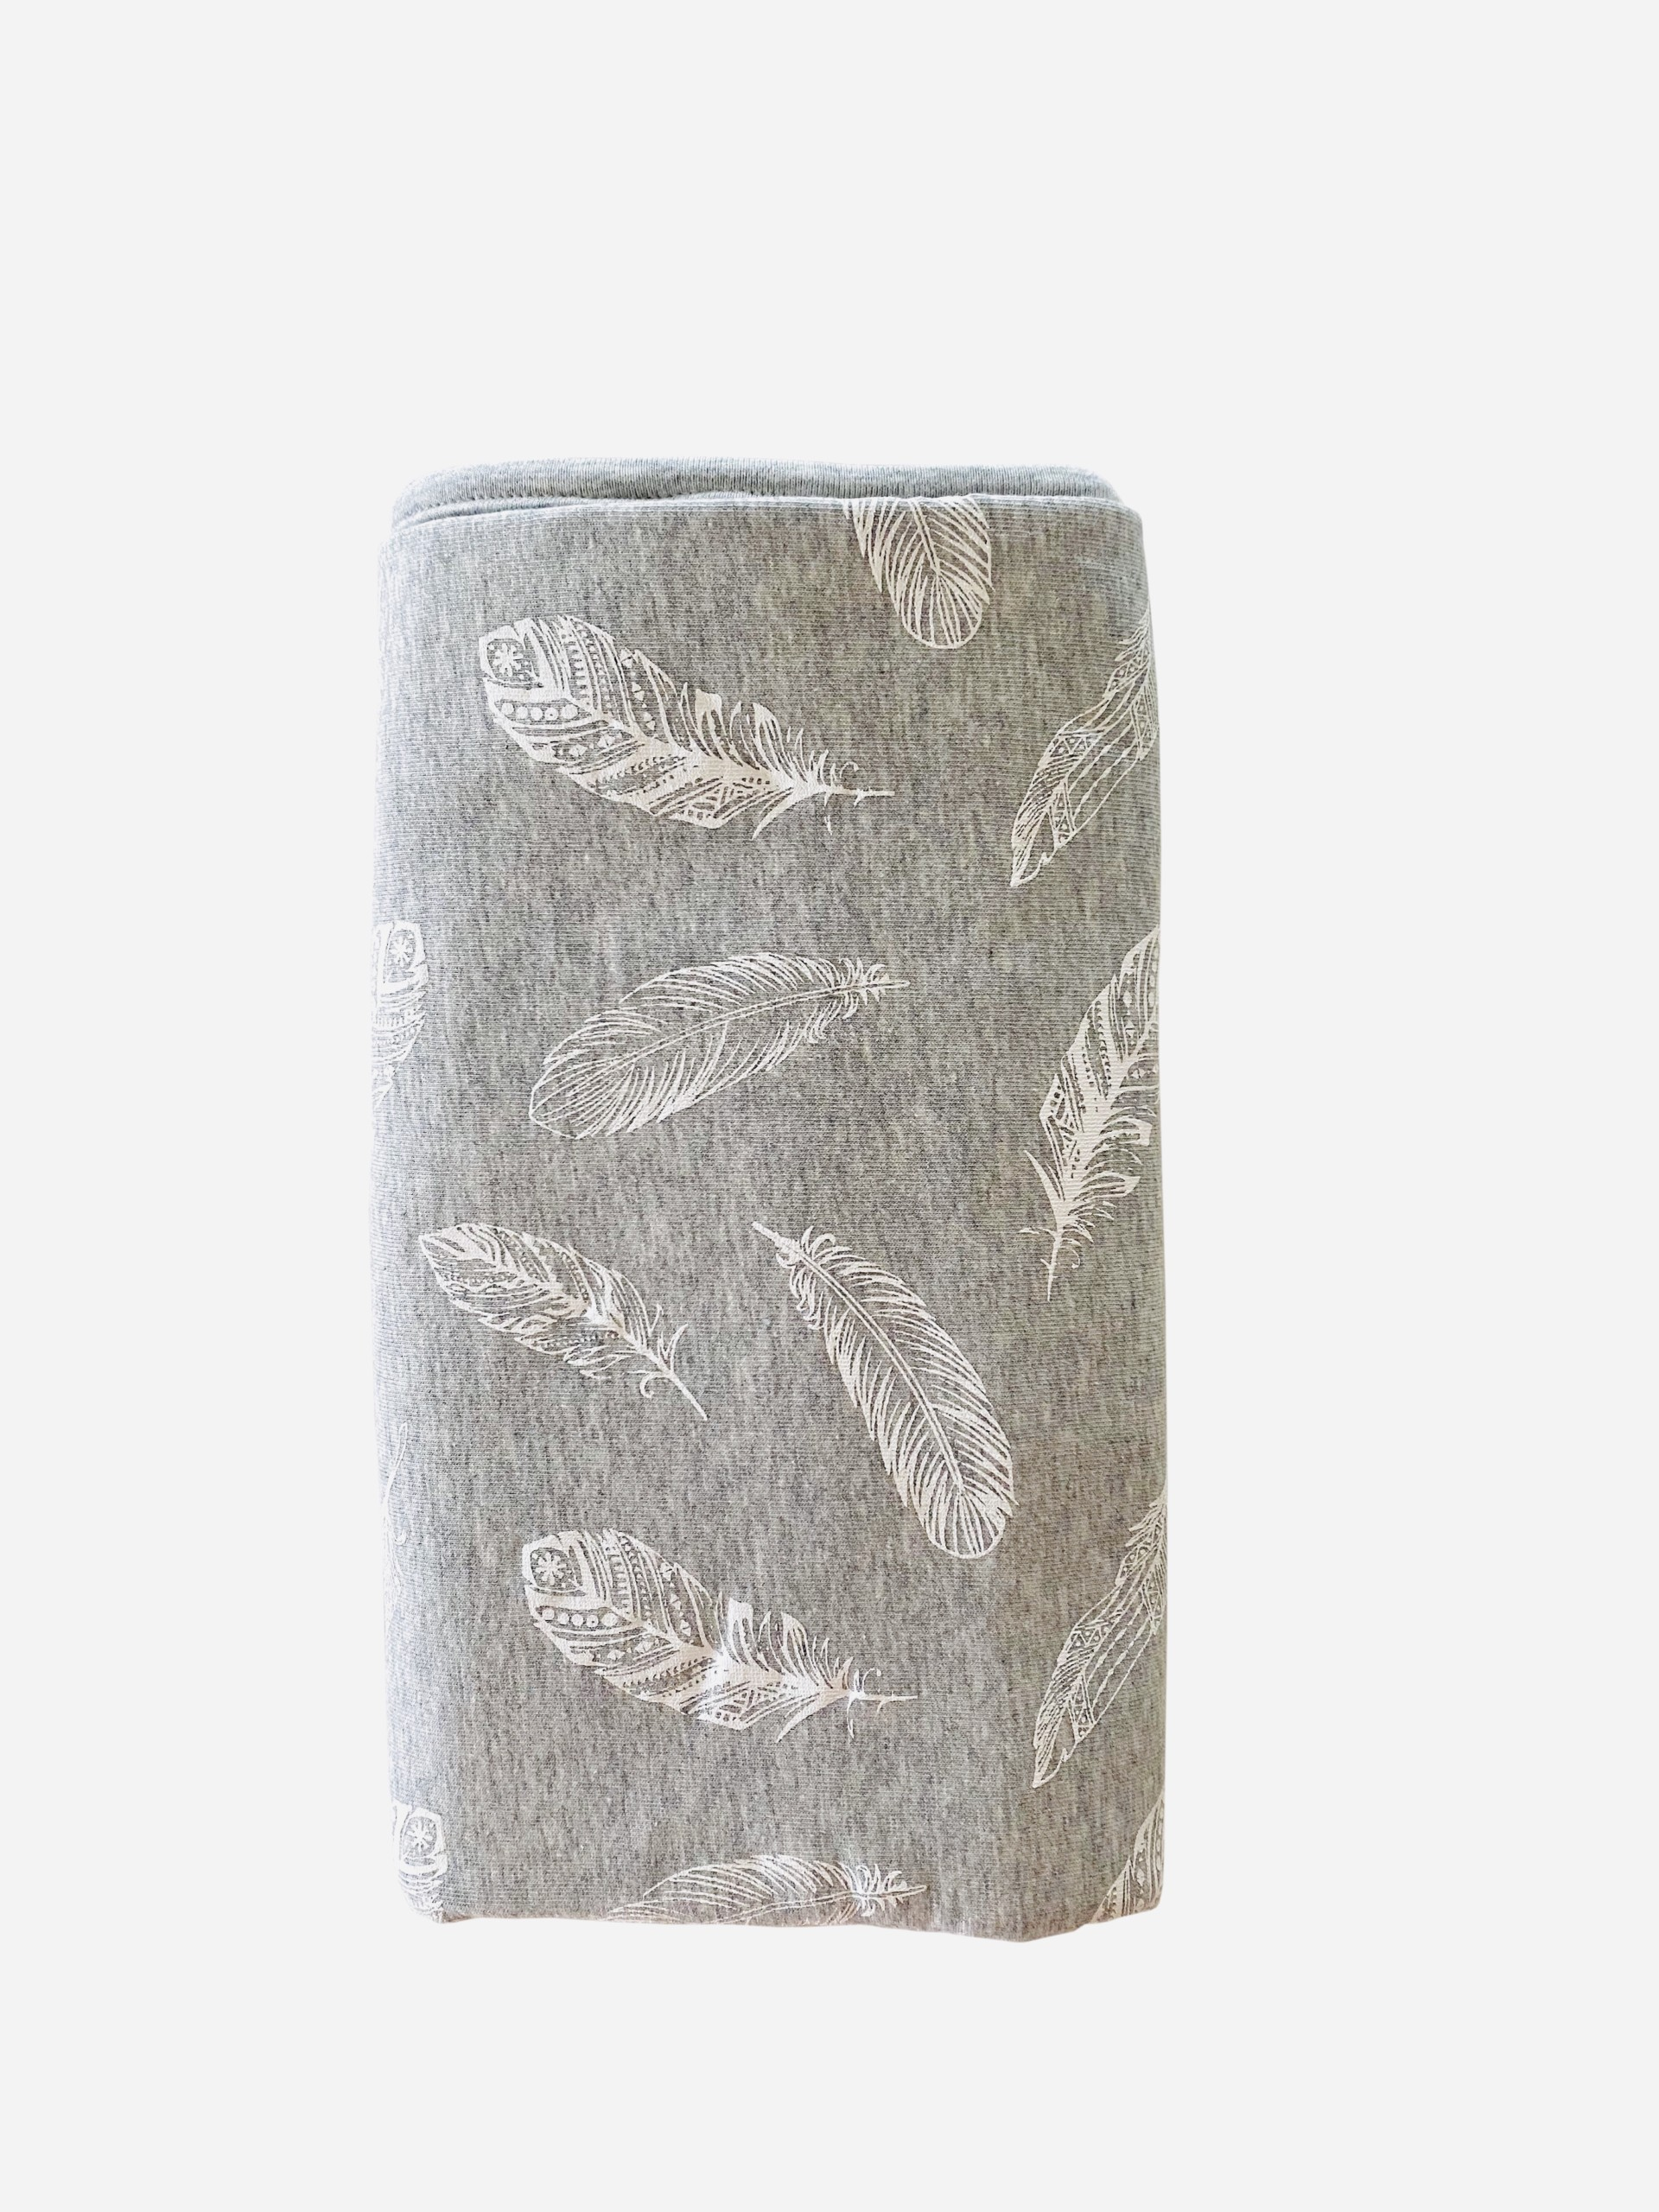 Stretch Cotton Blanket - Feathers on grey melange